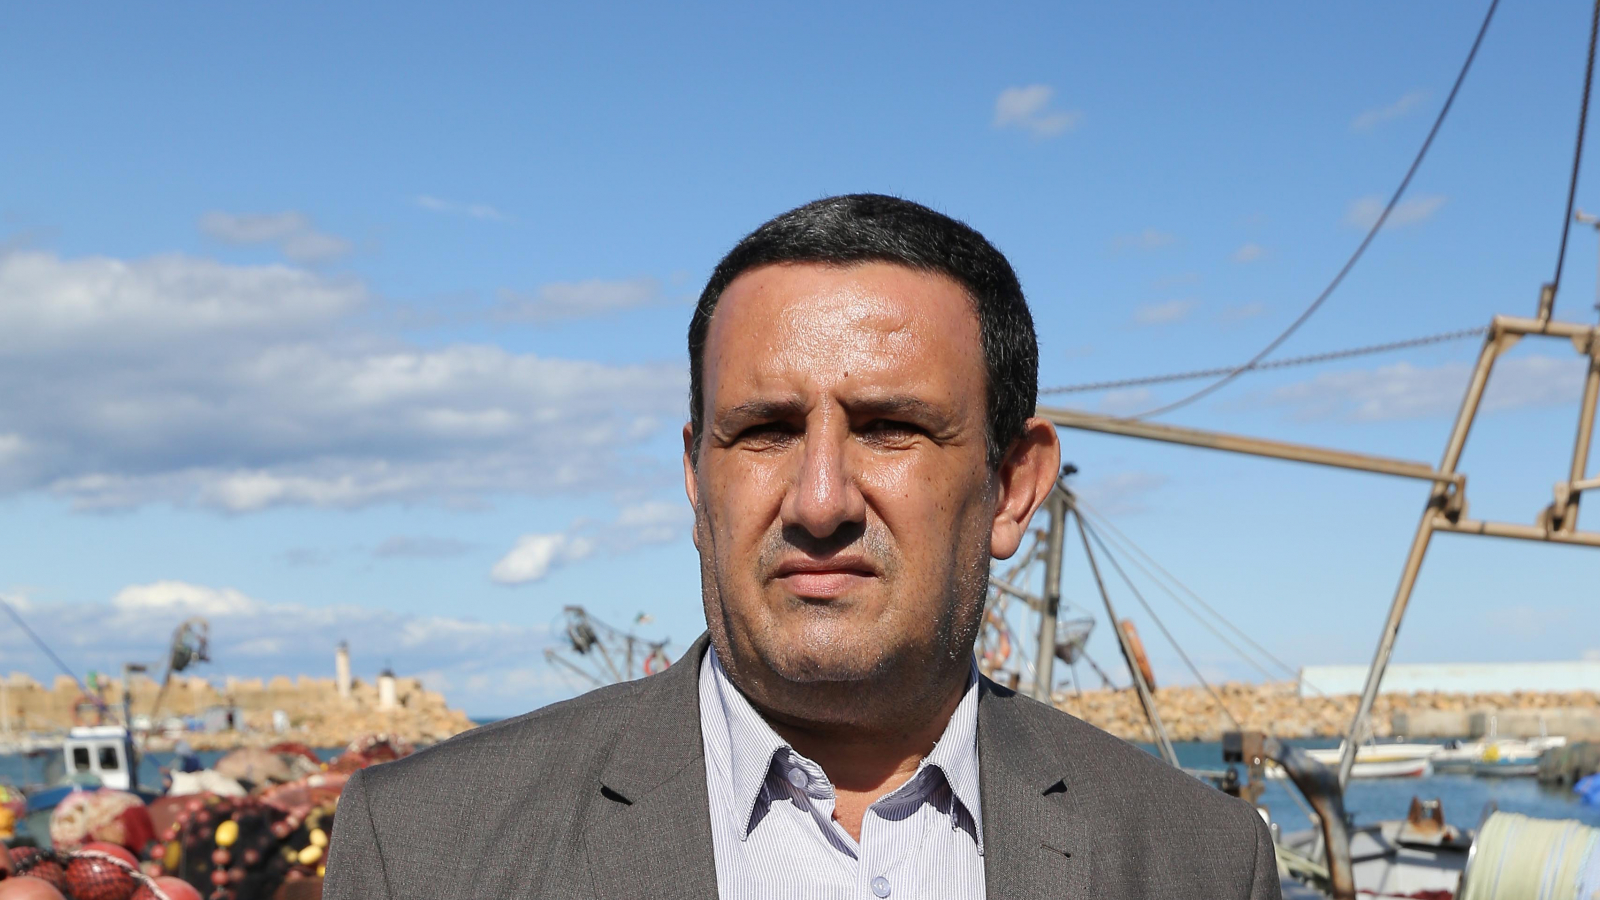 Wahid Salah, director of the Cherchell Fisheries and Aquaculture Technical Training School